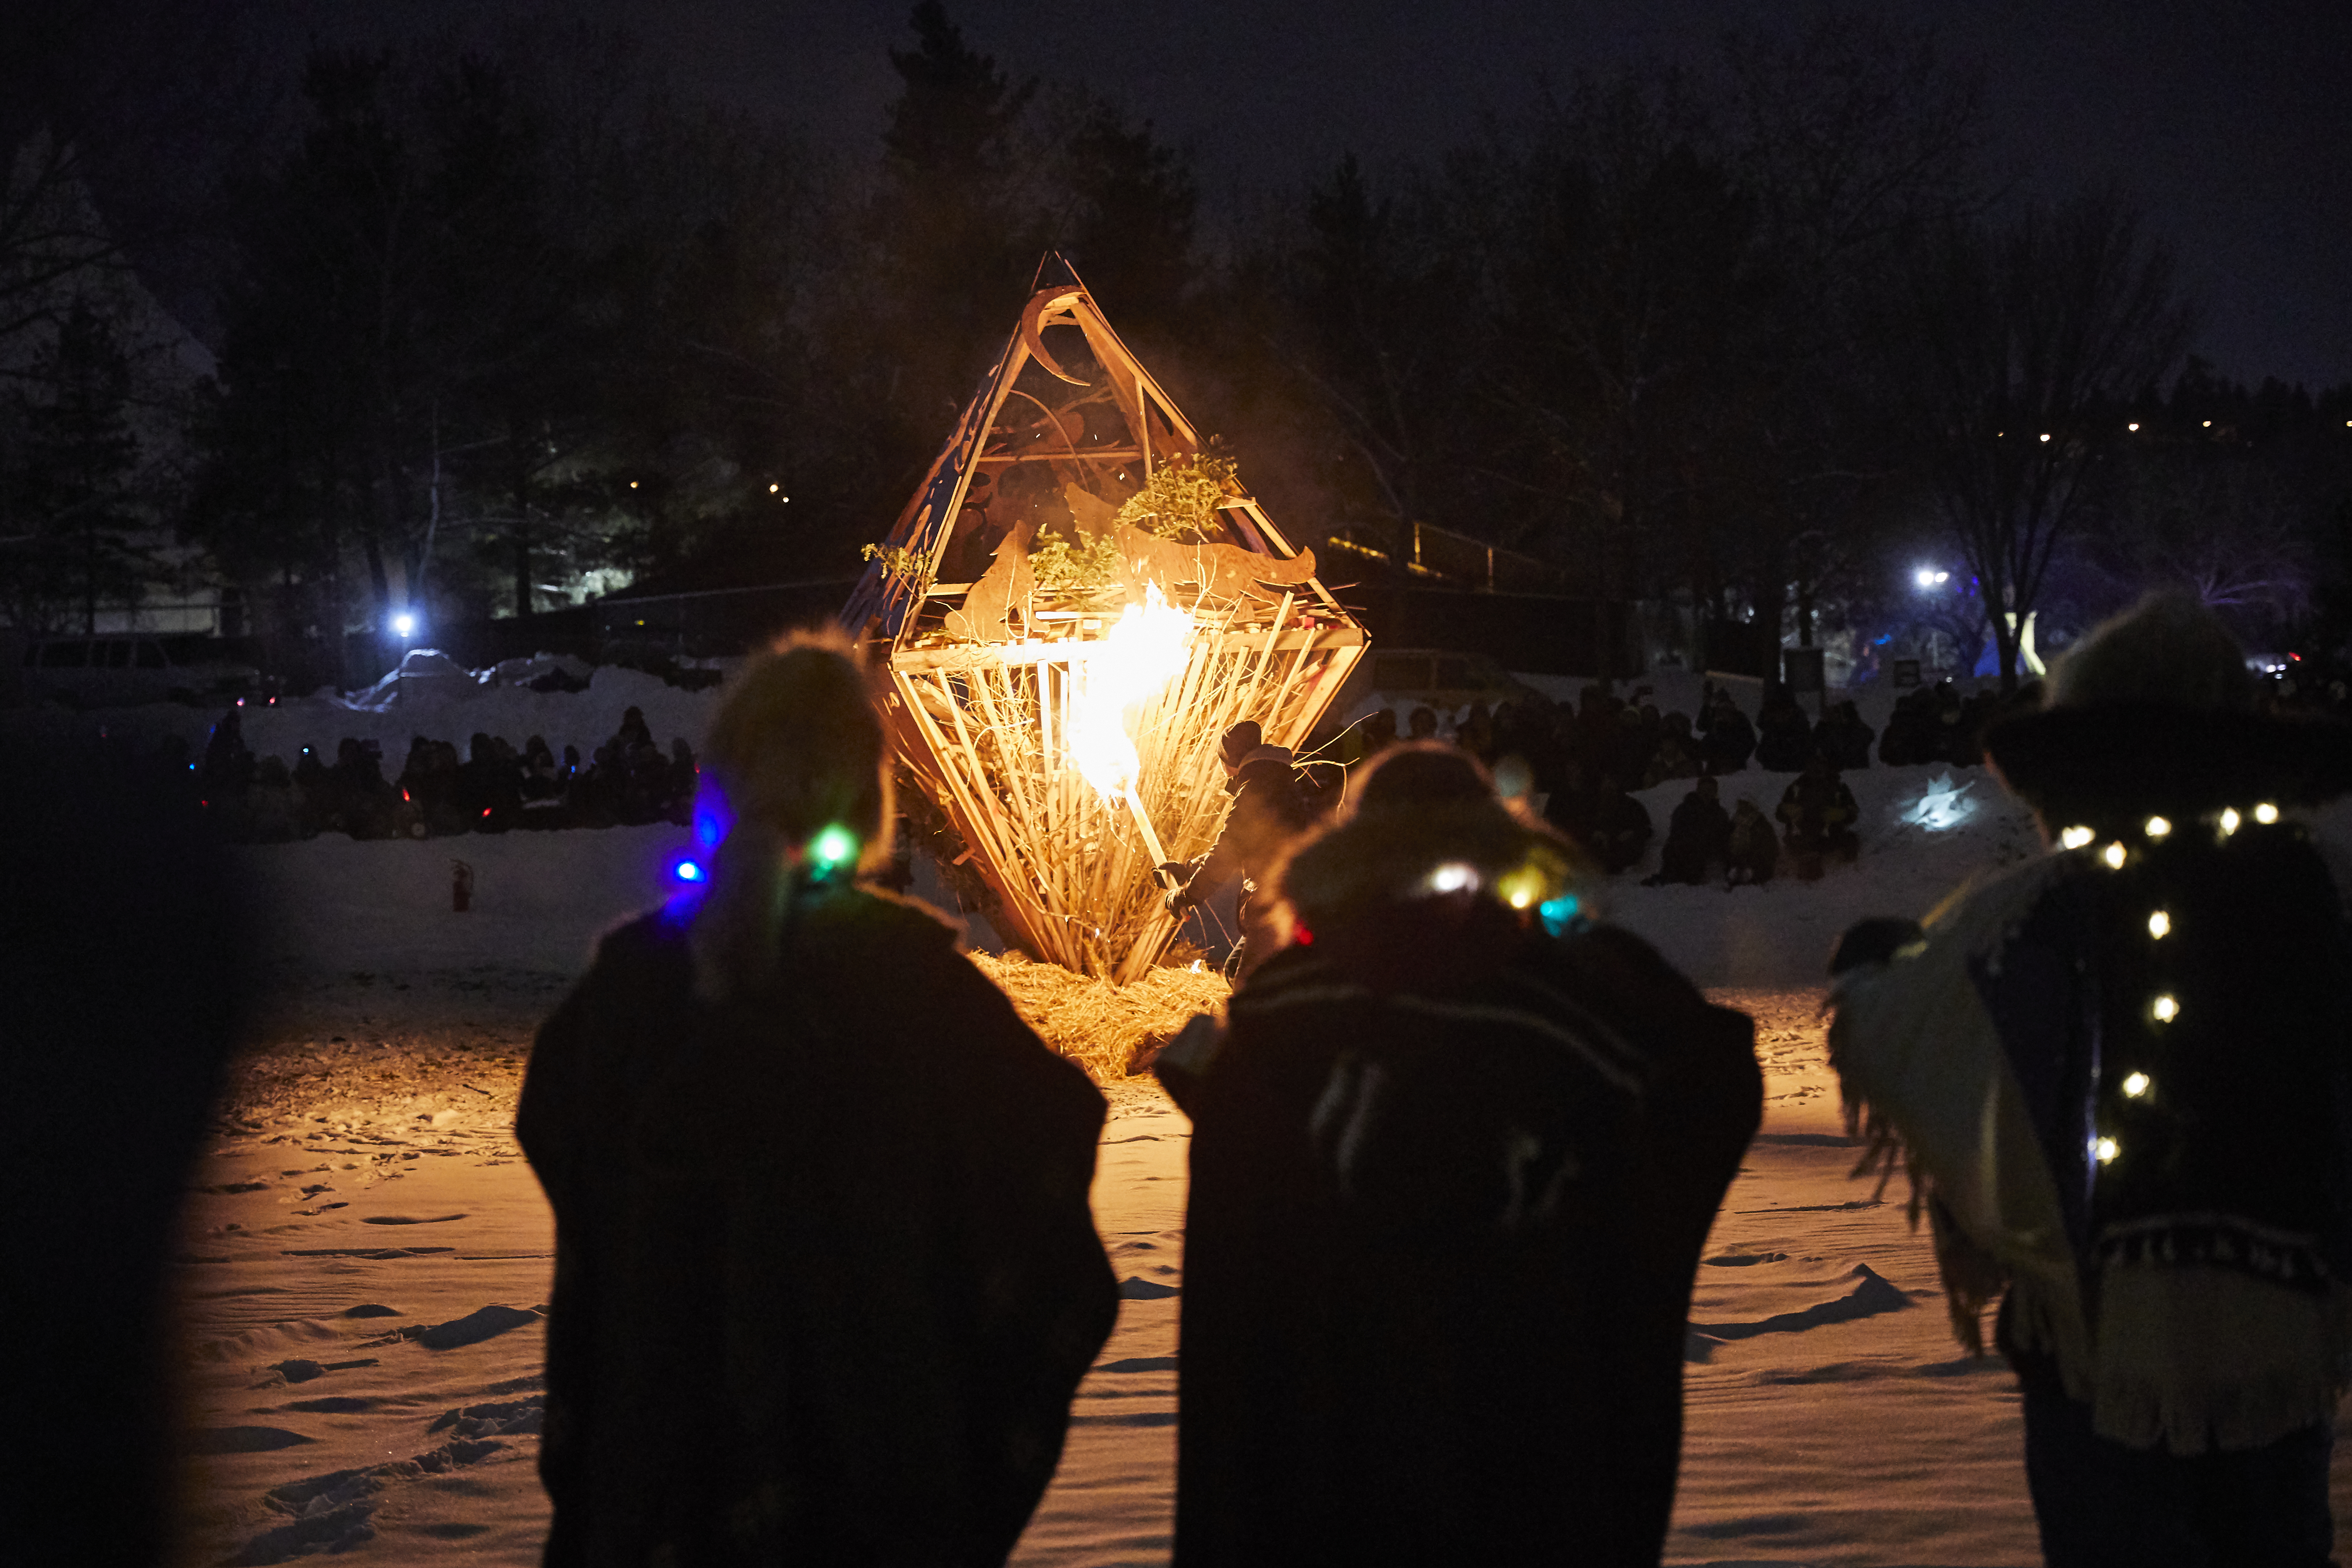 Fire Sculpture at the Silver Skate Festival